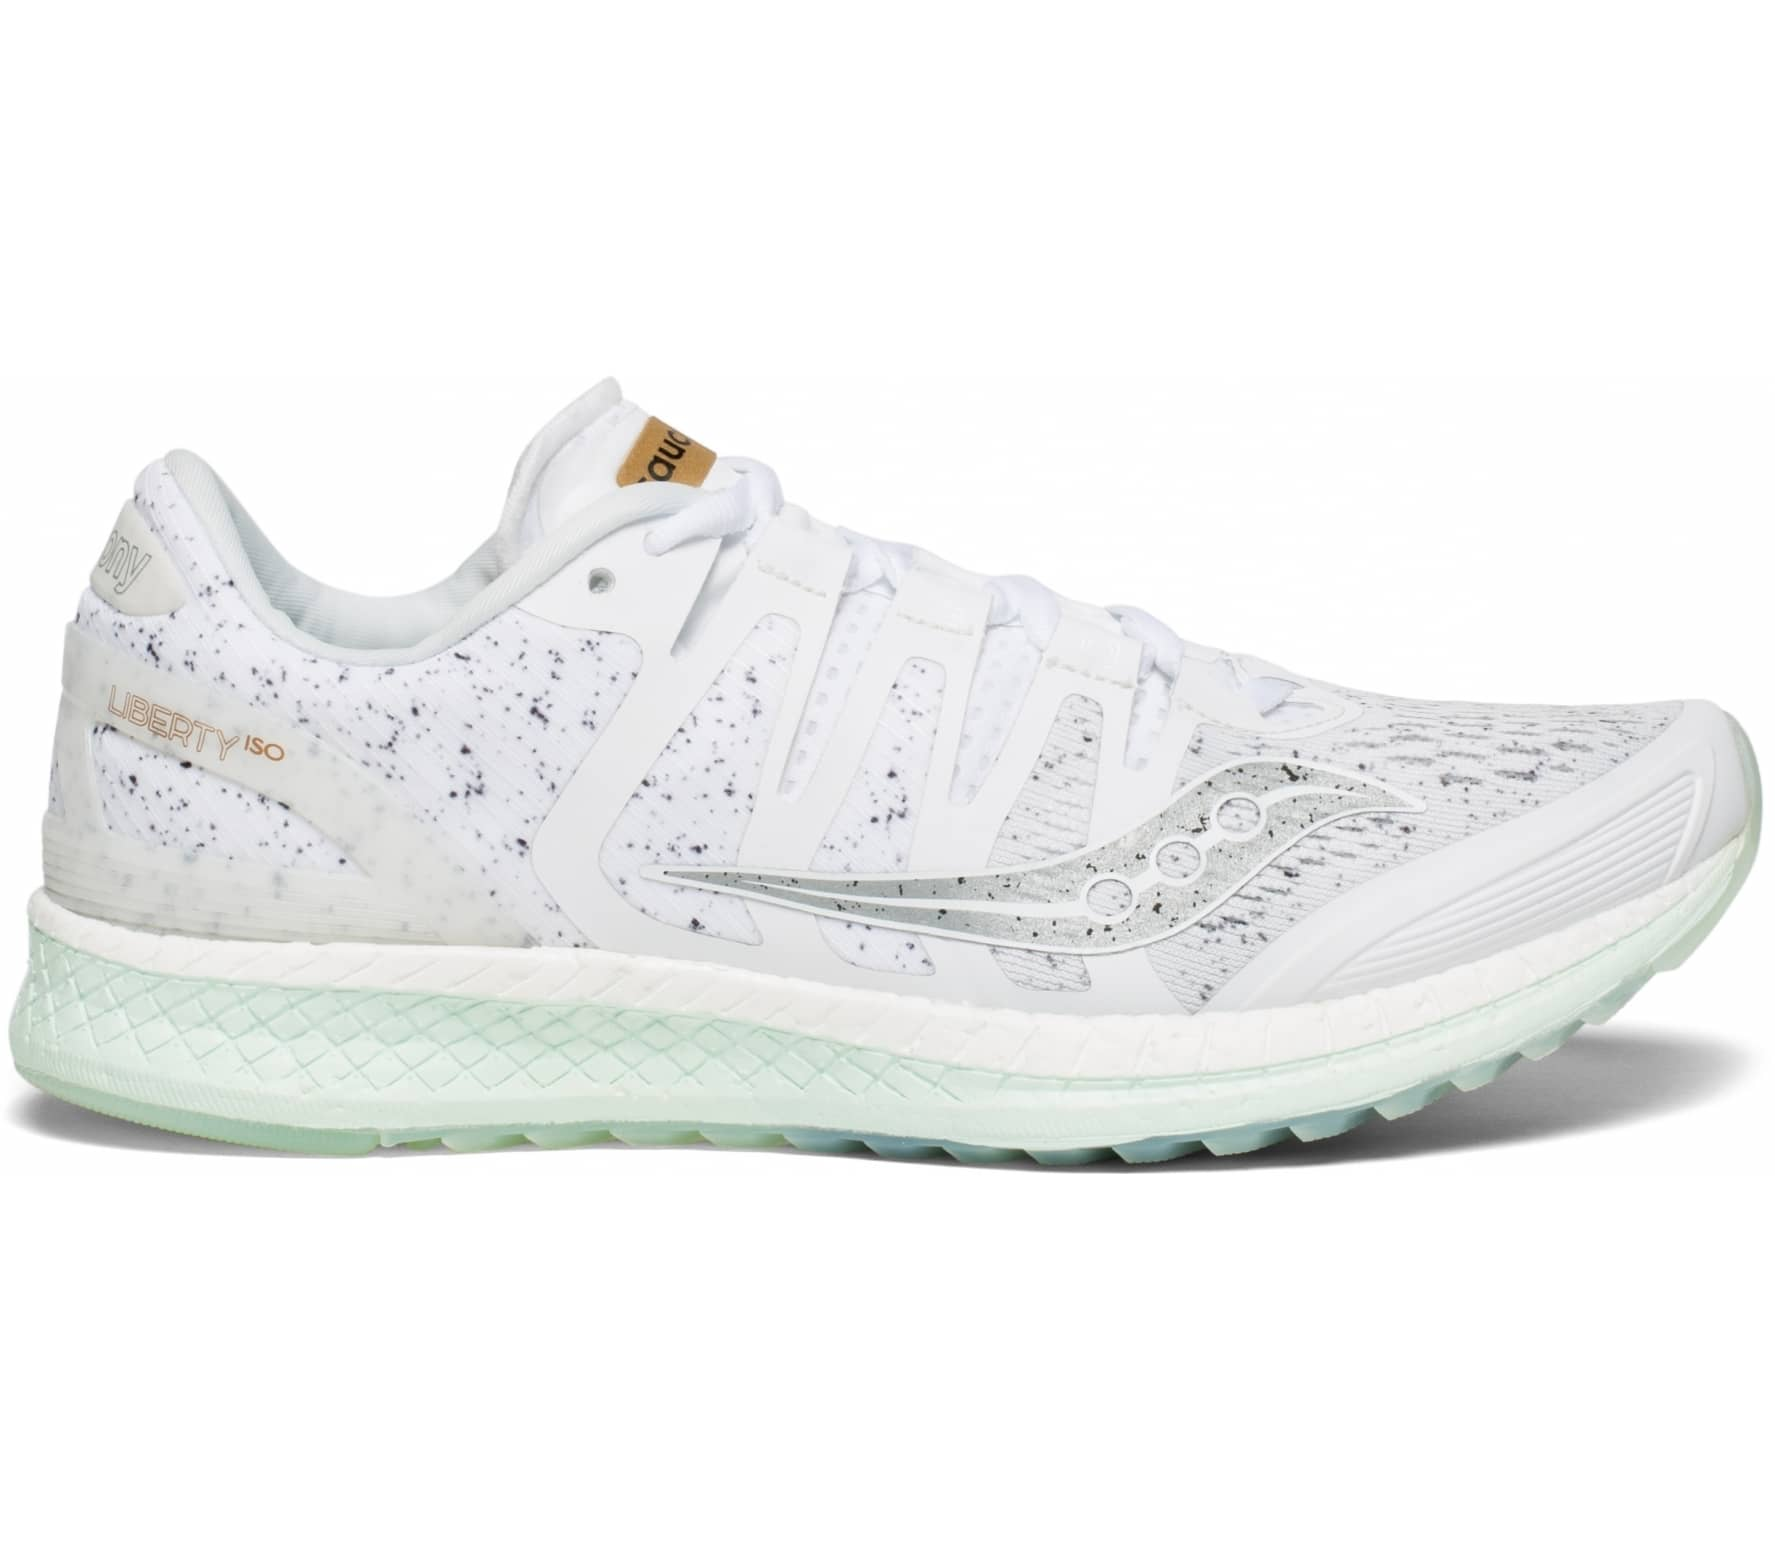 c689f3e92c3 Saucony - Liberty Iso women's running shoes (white/mint) Køb online ...